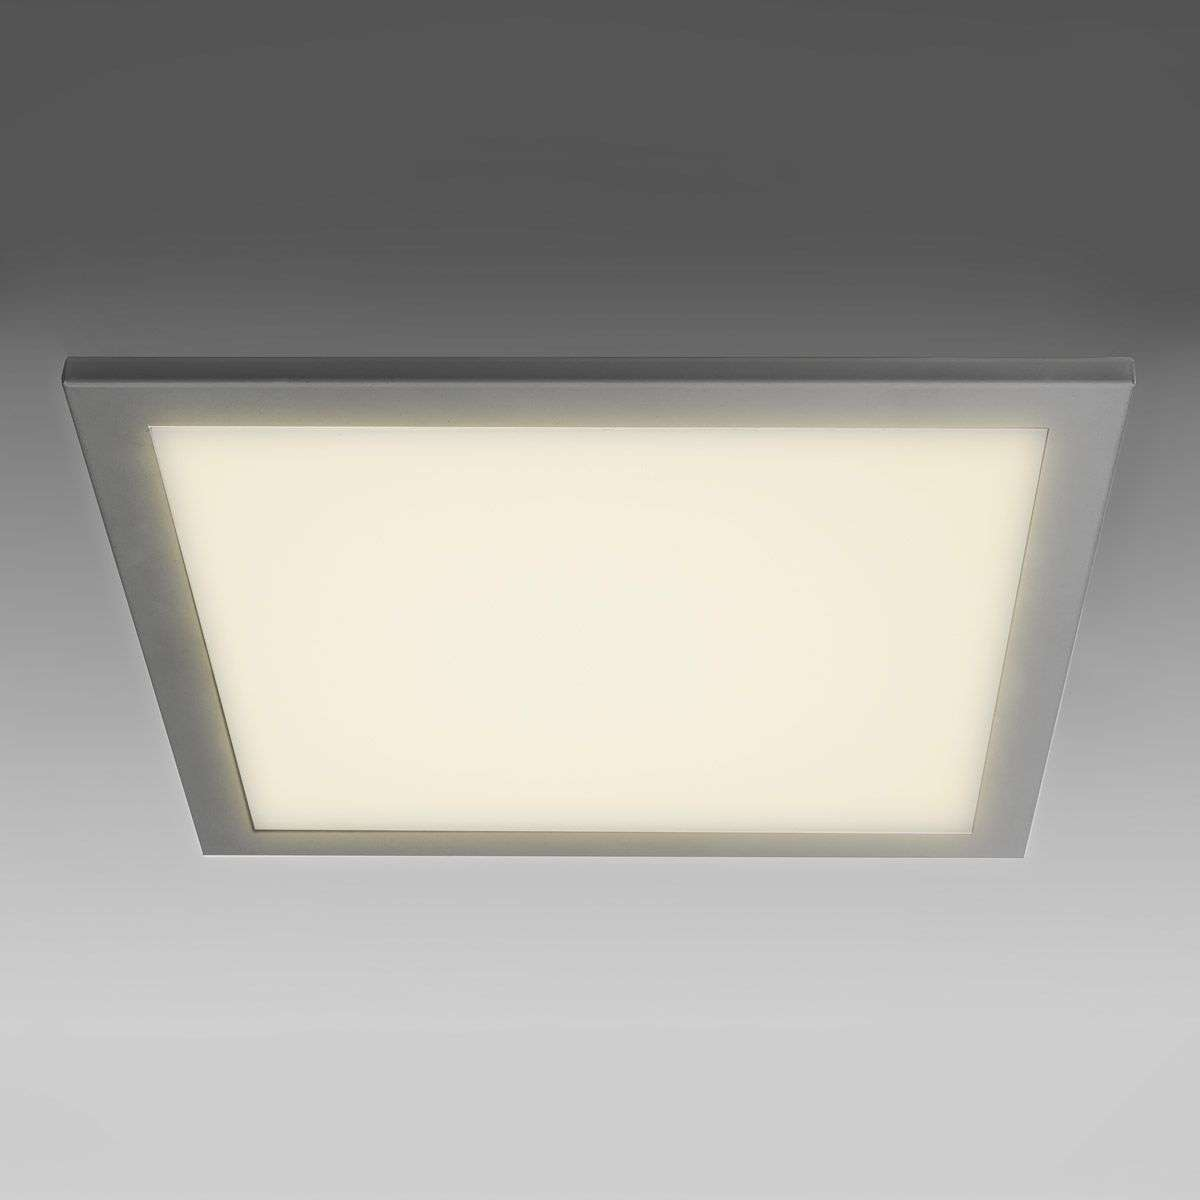 Plafonnier encastrable LED SUN 9, ultra-plat